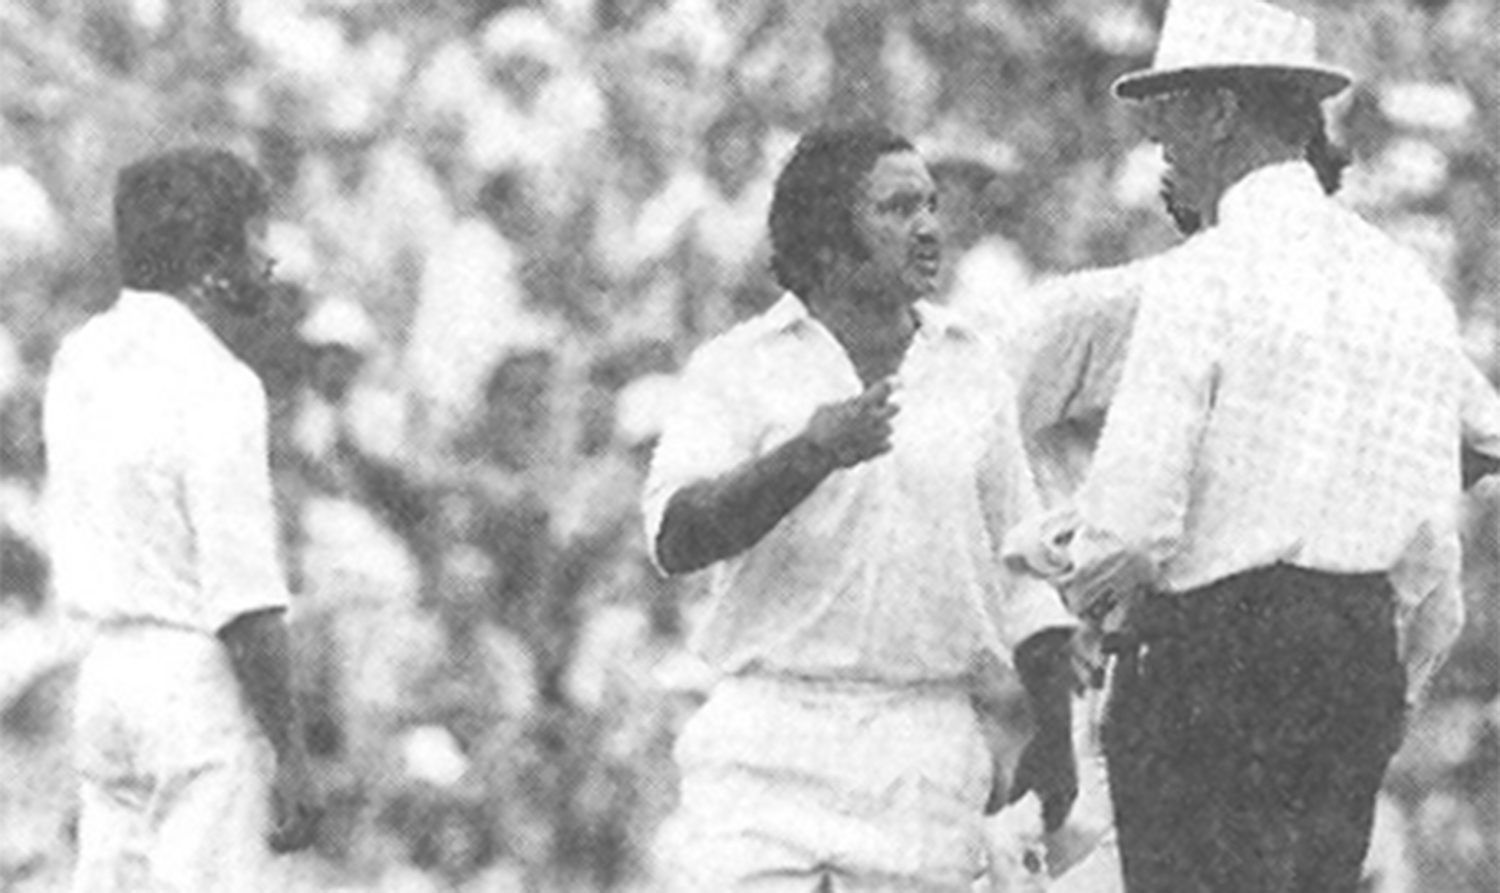 Mushtaq argues with the umpire. Imran is standing behind the umpire with hands on his hips. Also seen in the picture is substitute fielder, Wasim Raja.